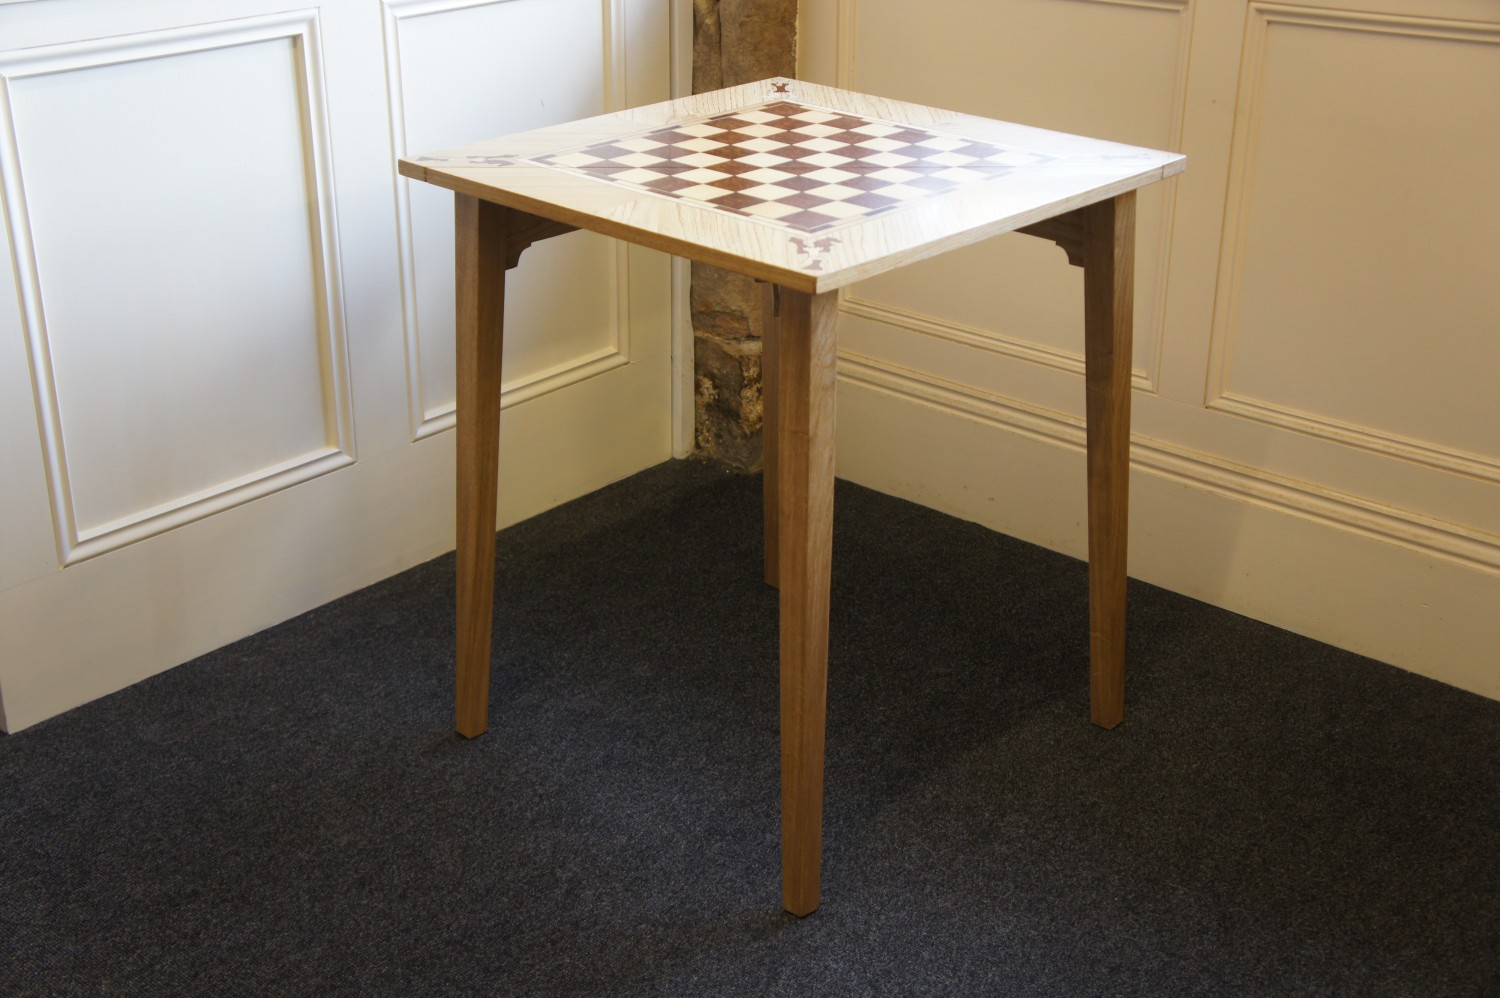 Table-Chess-table-with-veneered-detail.-Open-2